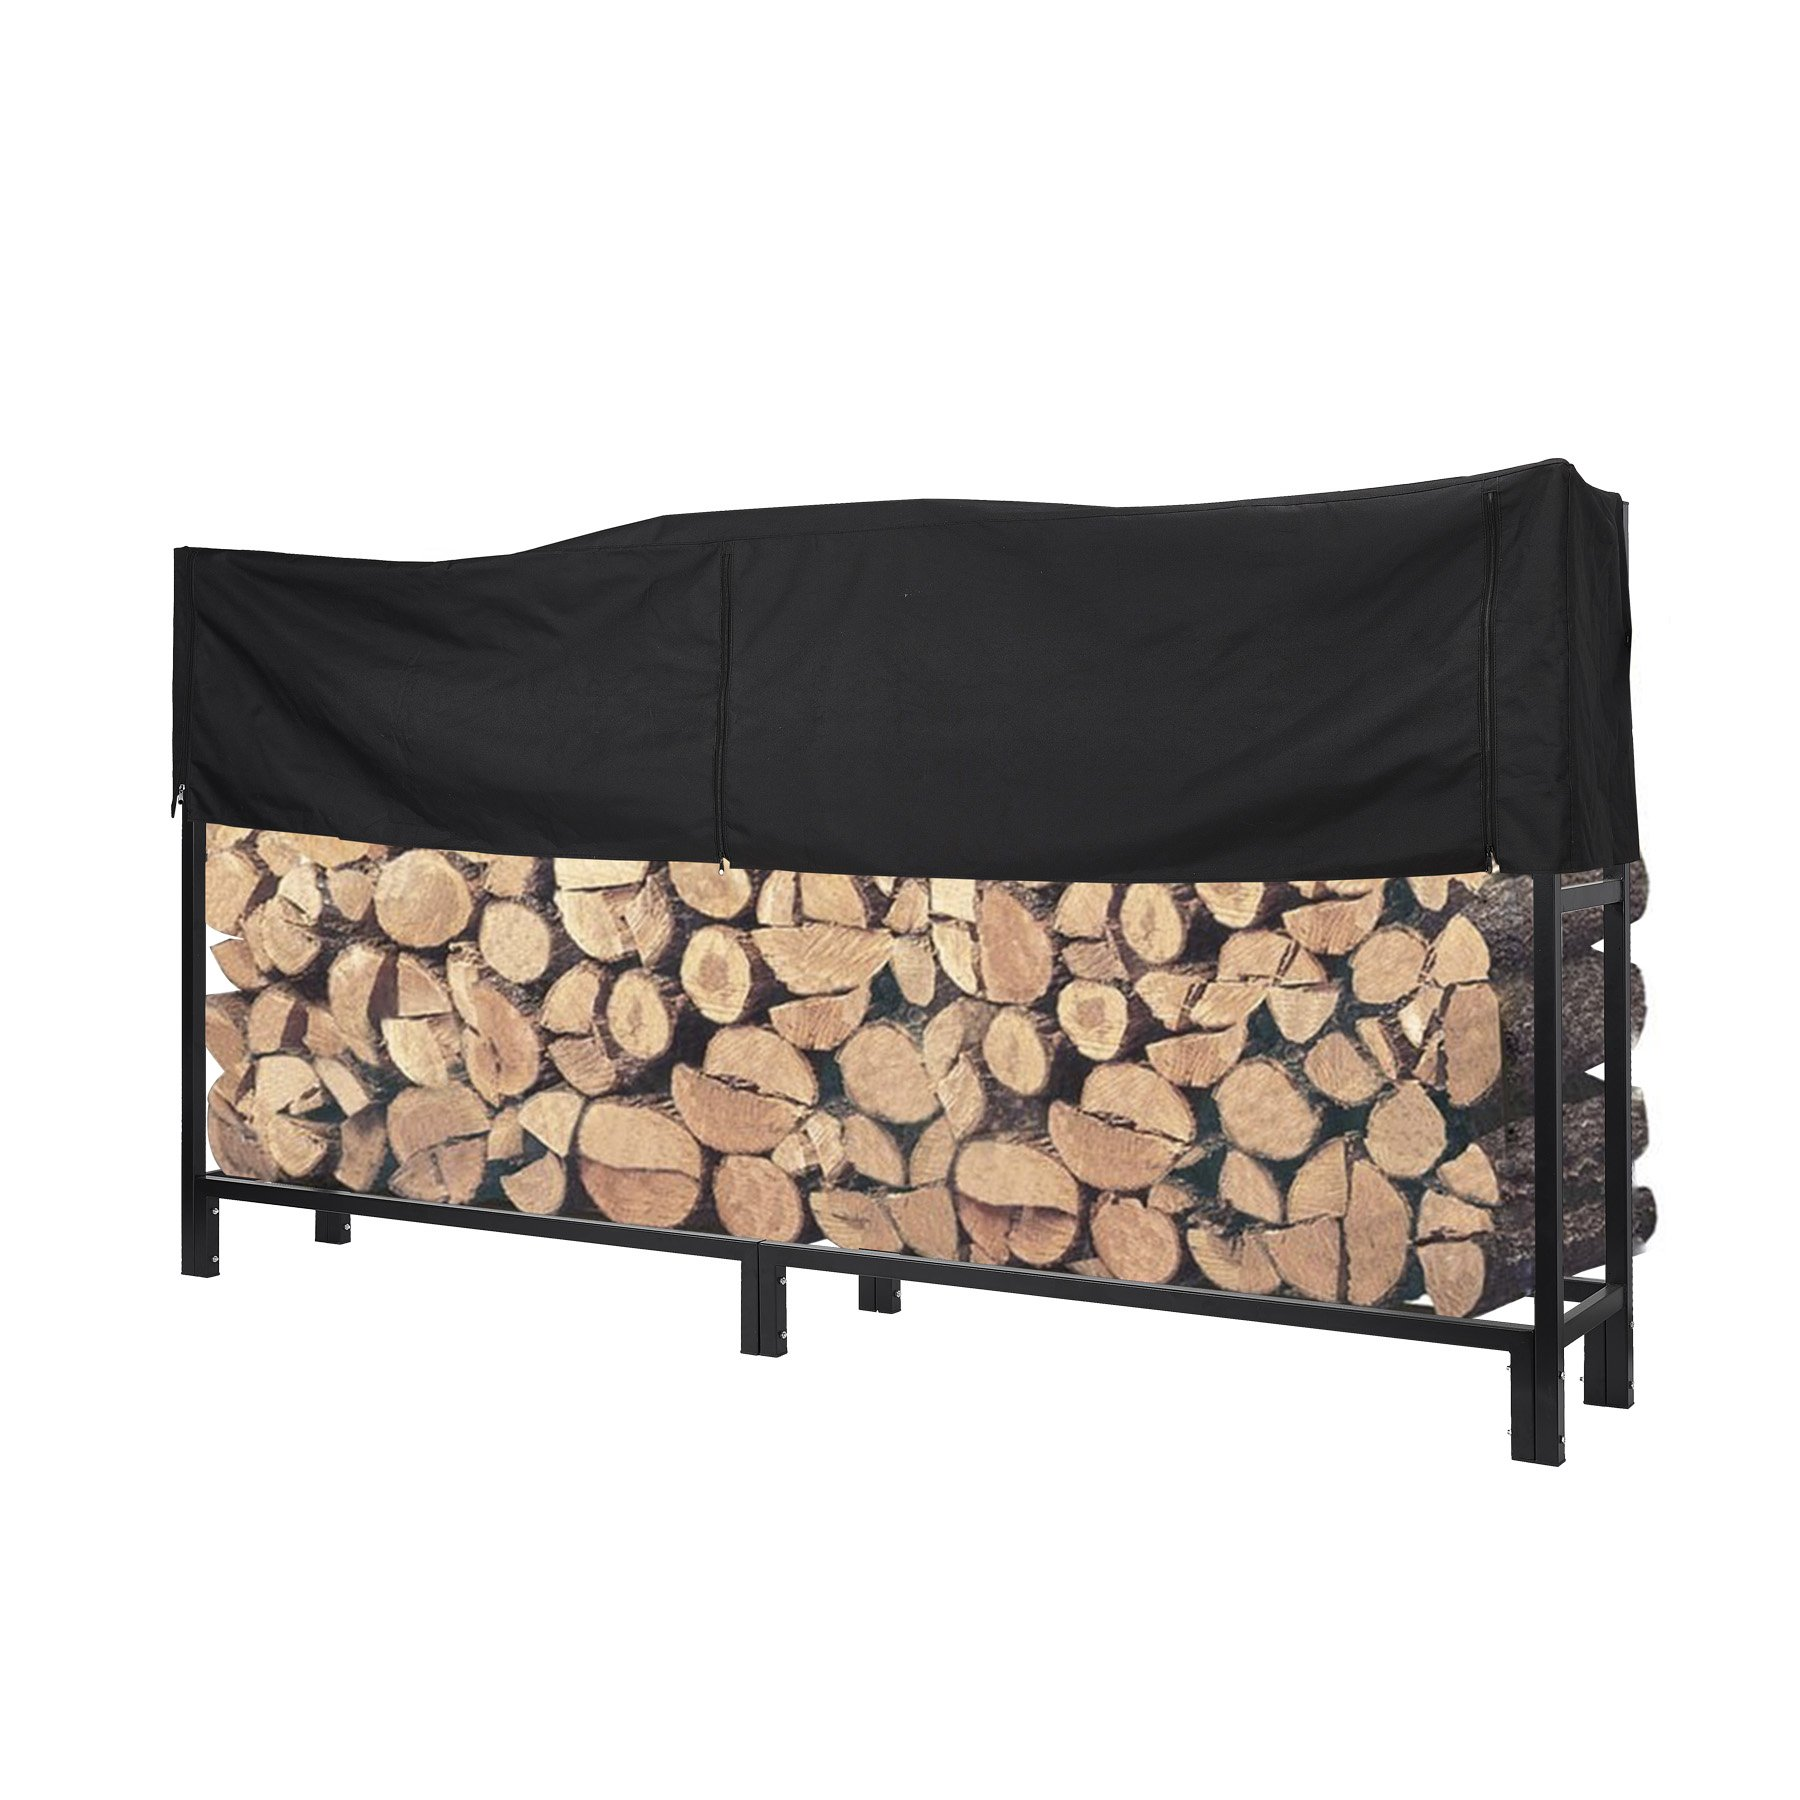 Pinty Ultra Duty Outdoor Firewood Log Rack with Cover Fireplace Wood Holder (8 Foot) by Pinty